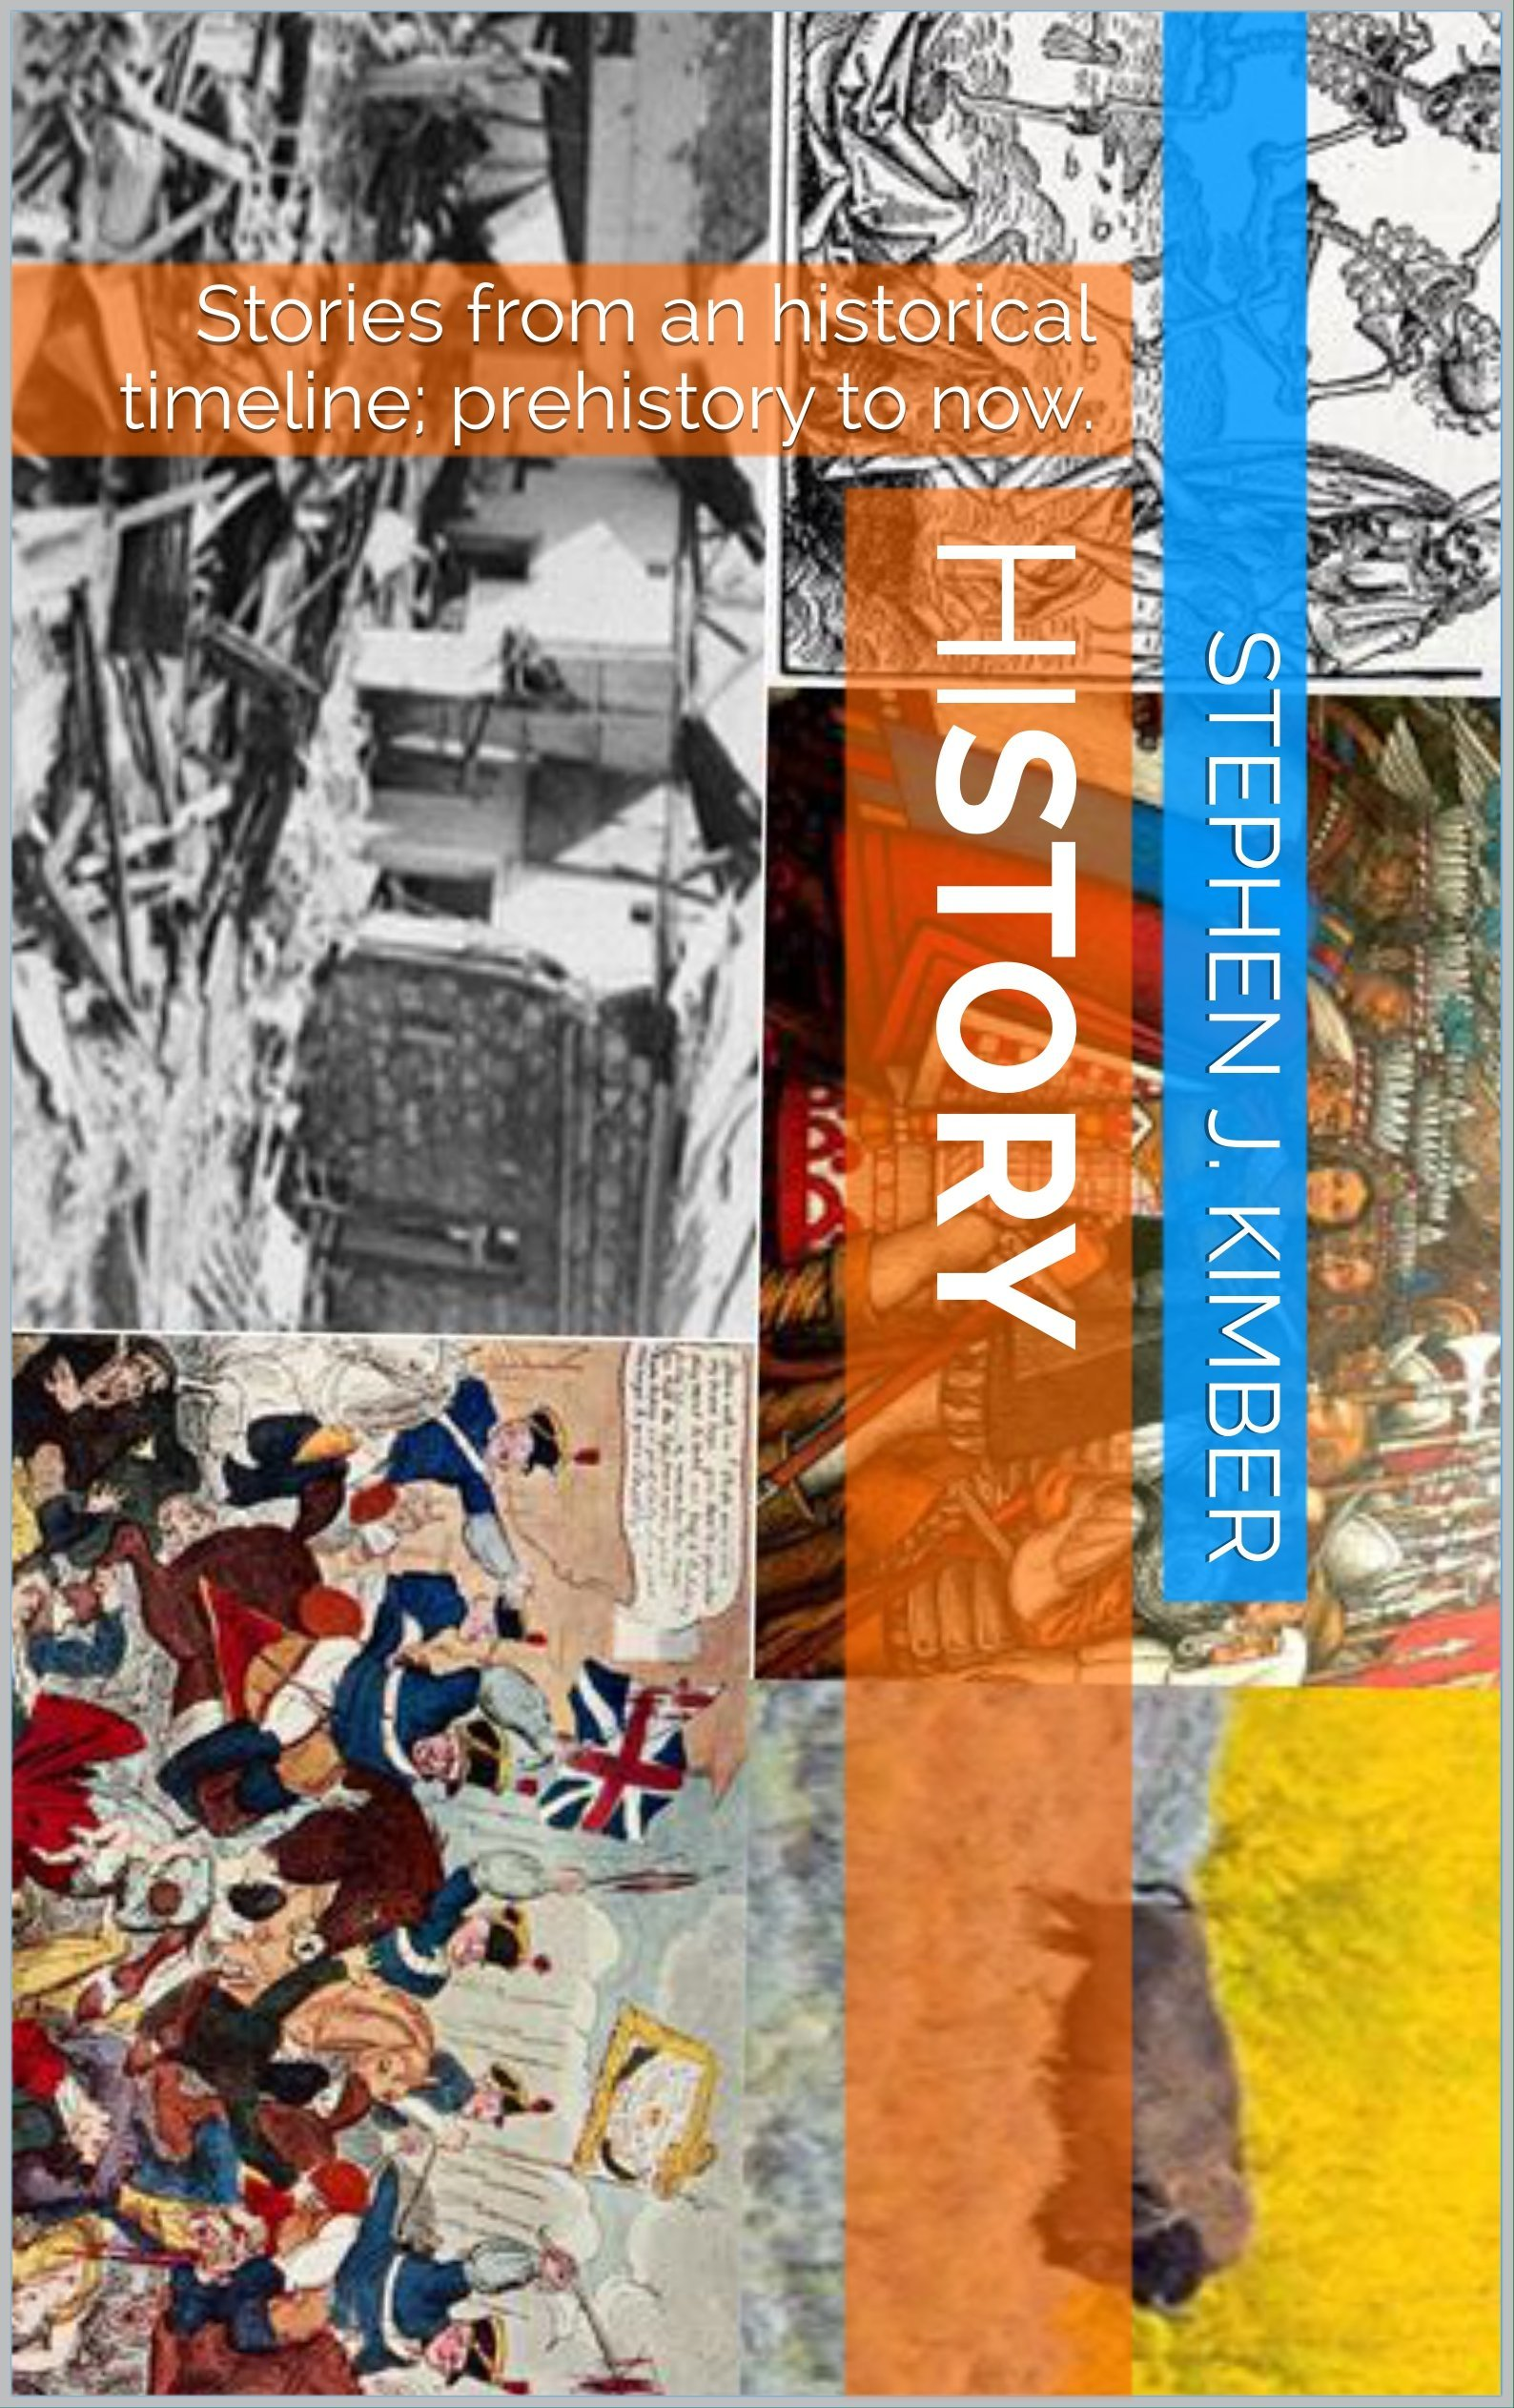 hiSTORY: Stories from an historical timeline; prehistory to now. por Stephen J. Kimber